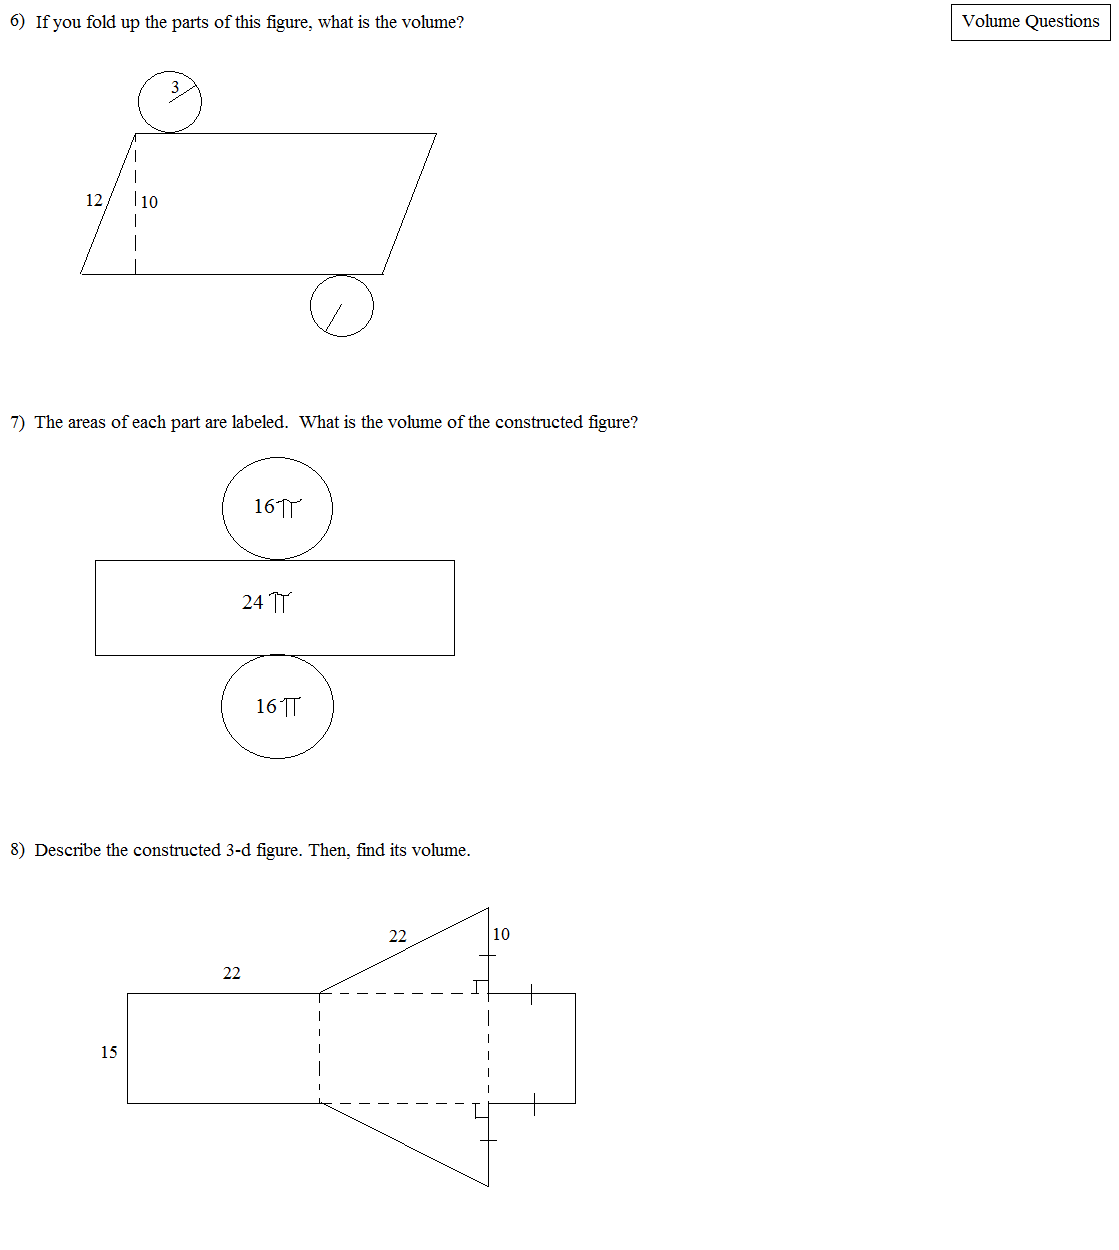 Mathworksheets4kids Volume Of Triangular Prism